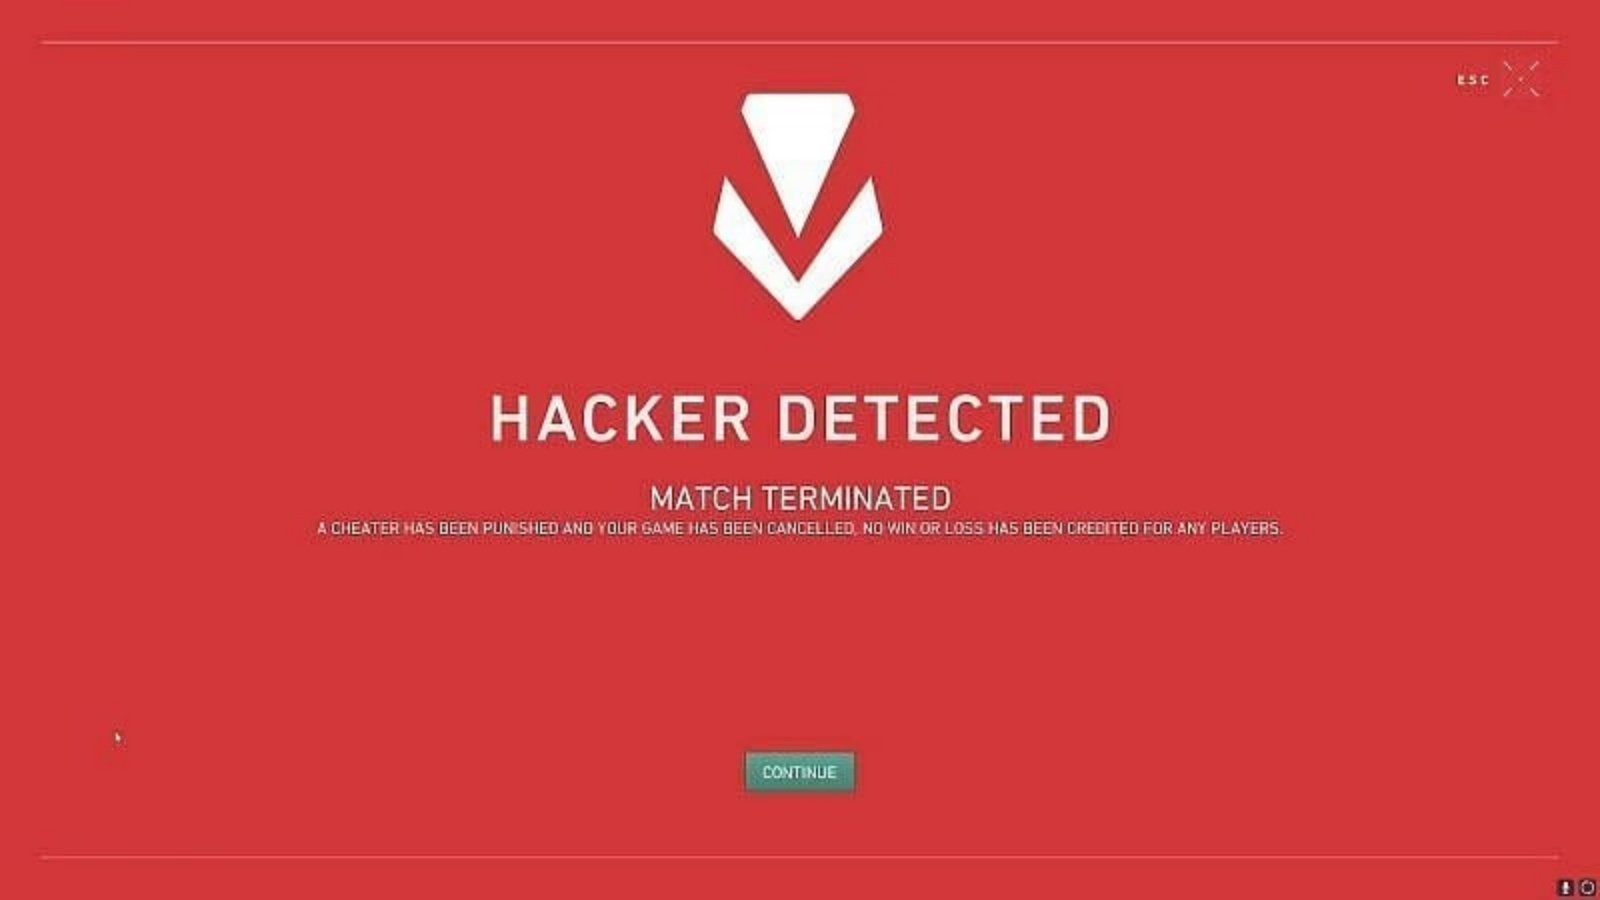 How to Identify Hackers in Valorant: Caution in Matches